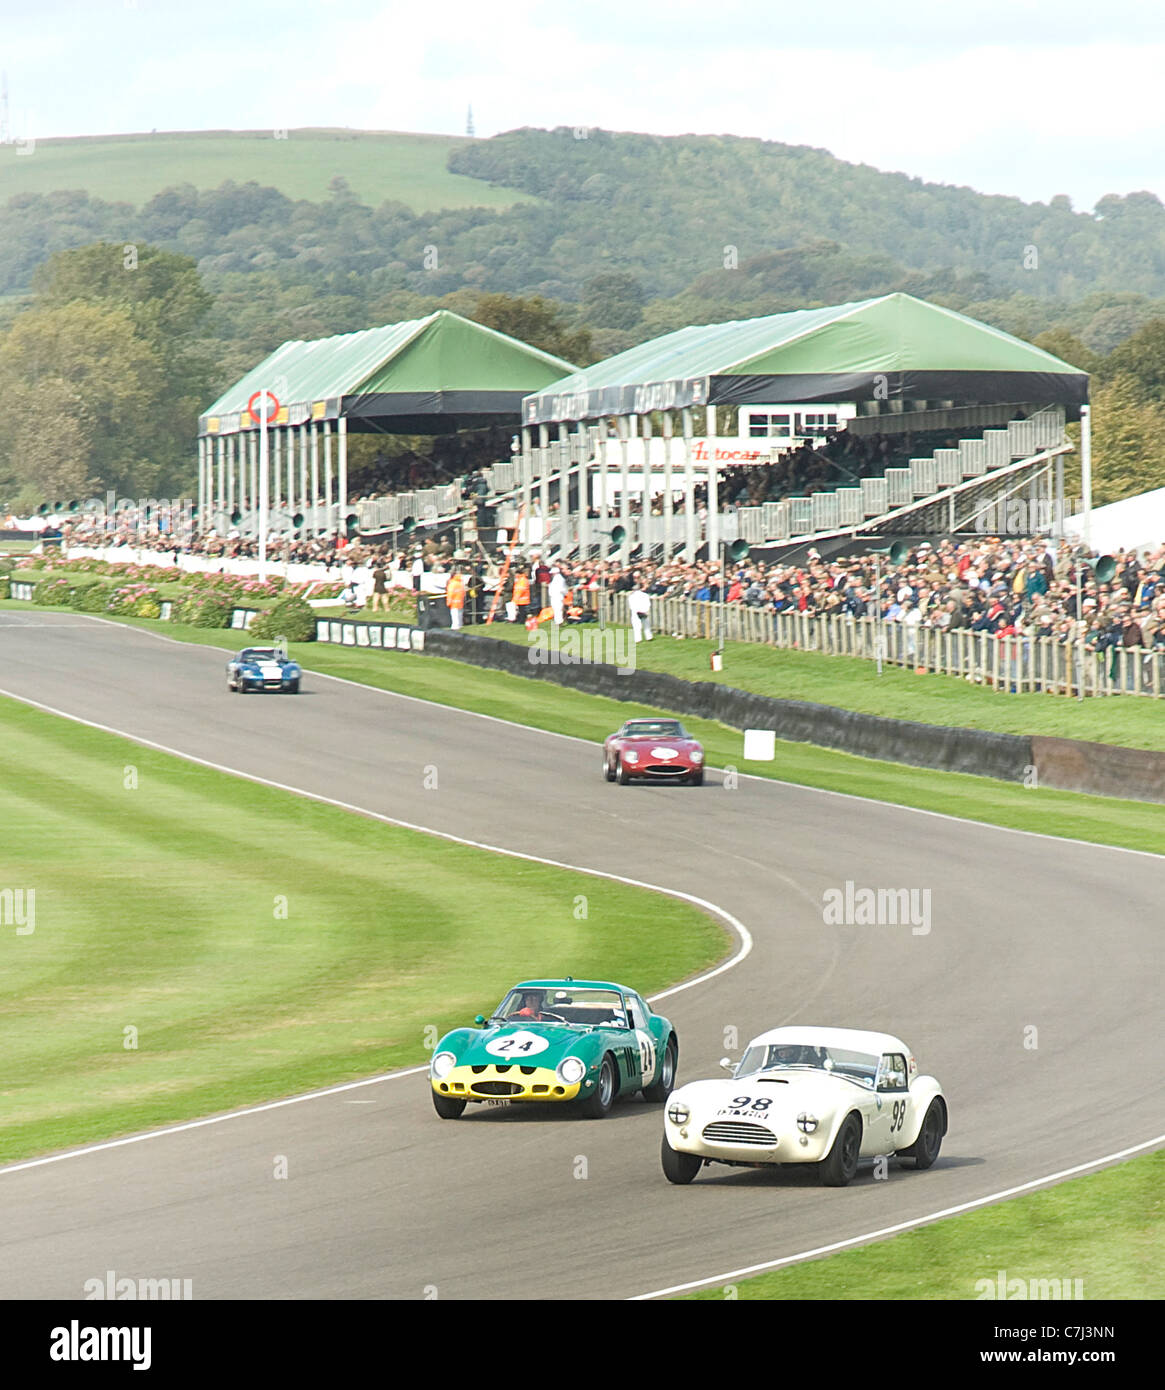 2011 Goodwood Revival Meeting. AC Cobra and Ferrari 250 GTO at Madgwick corner during qualifying for Tourist Trophy - Stock Image